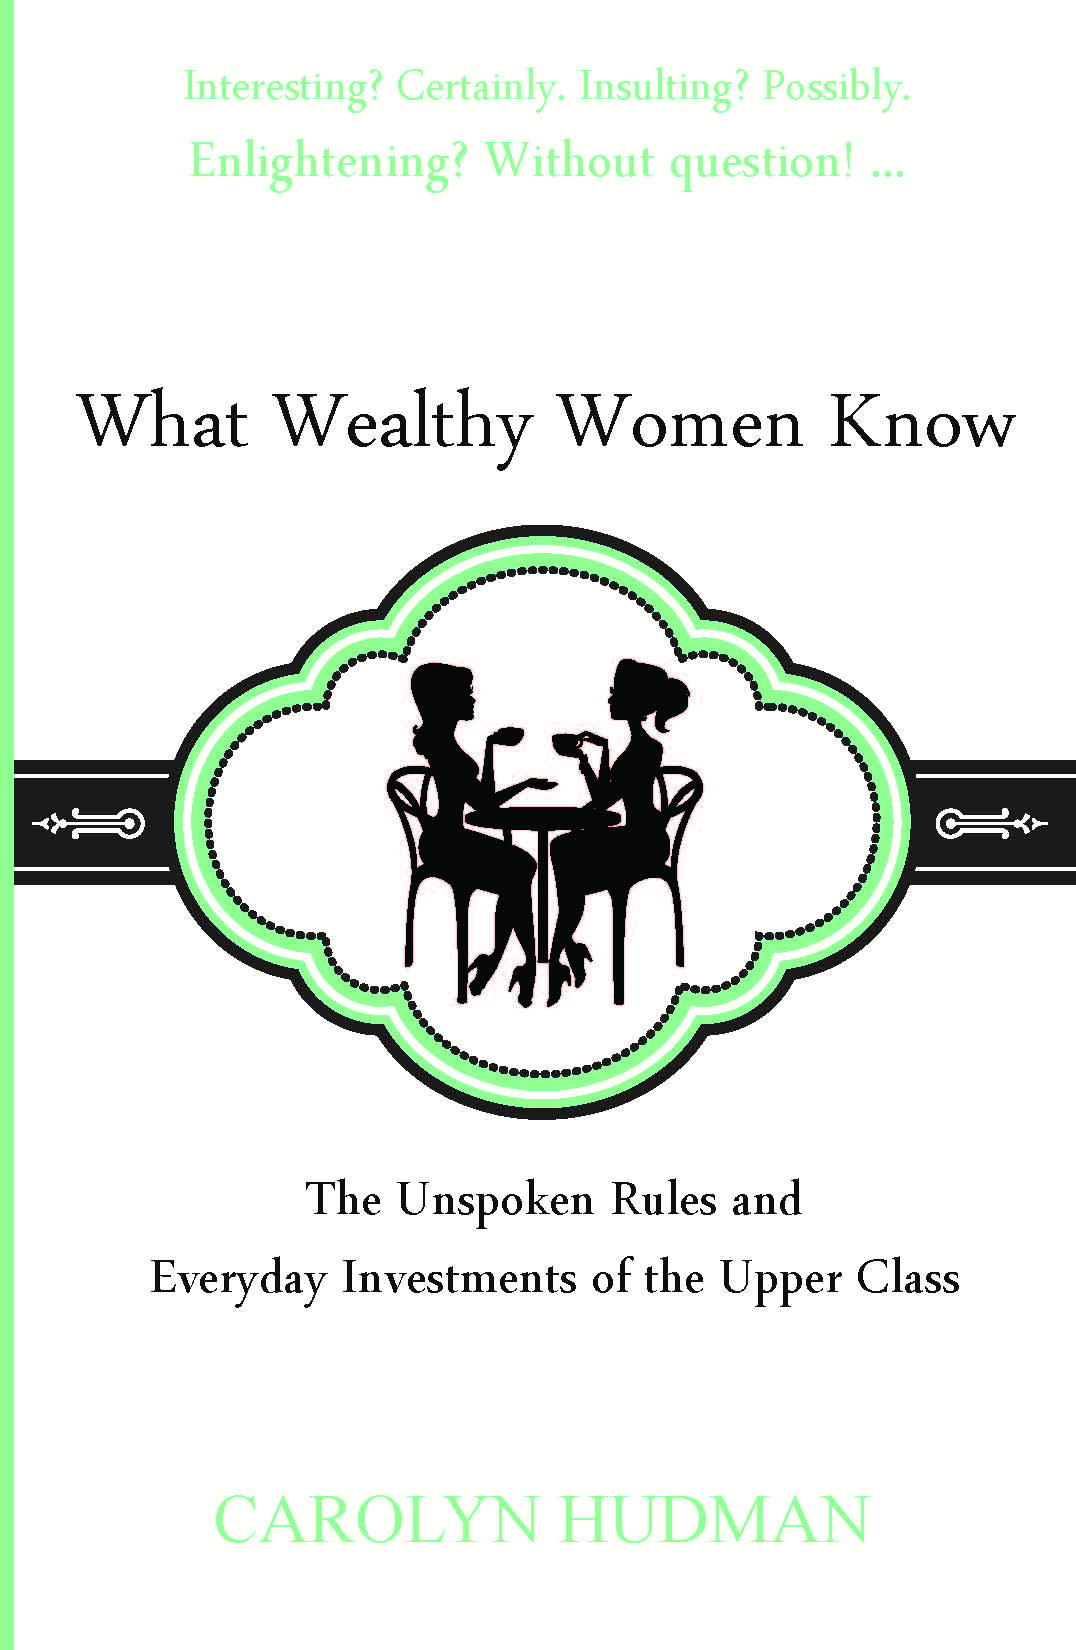 What Wealthy Women Know